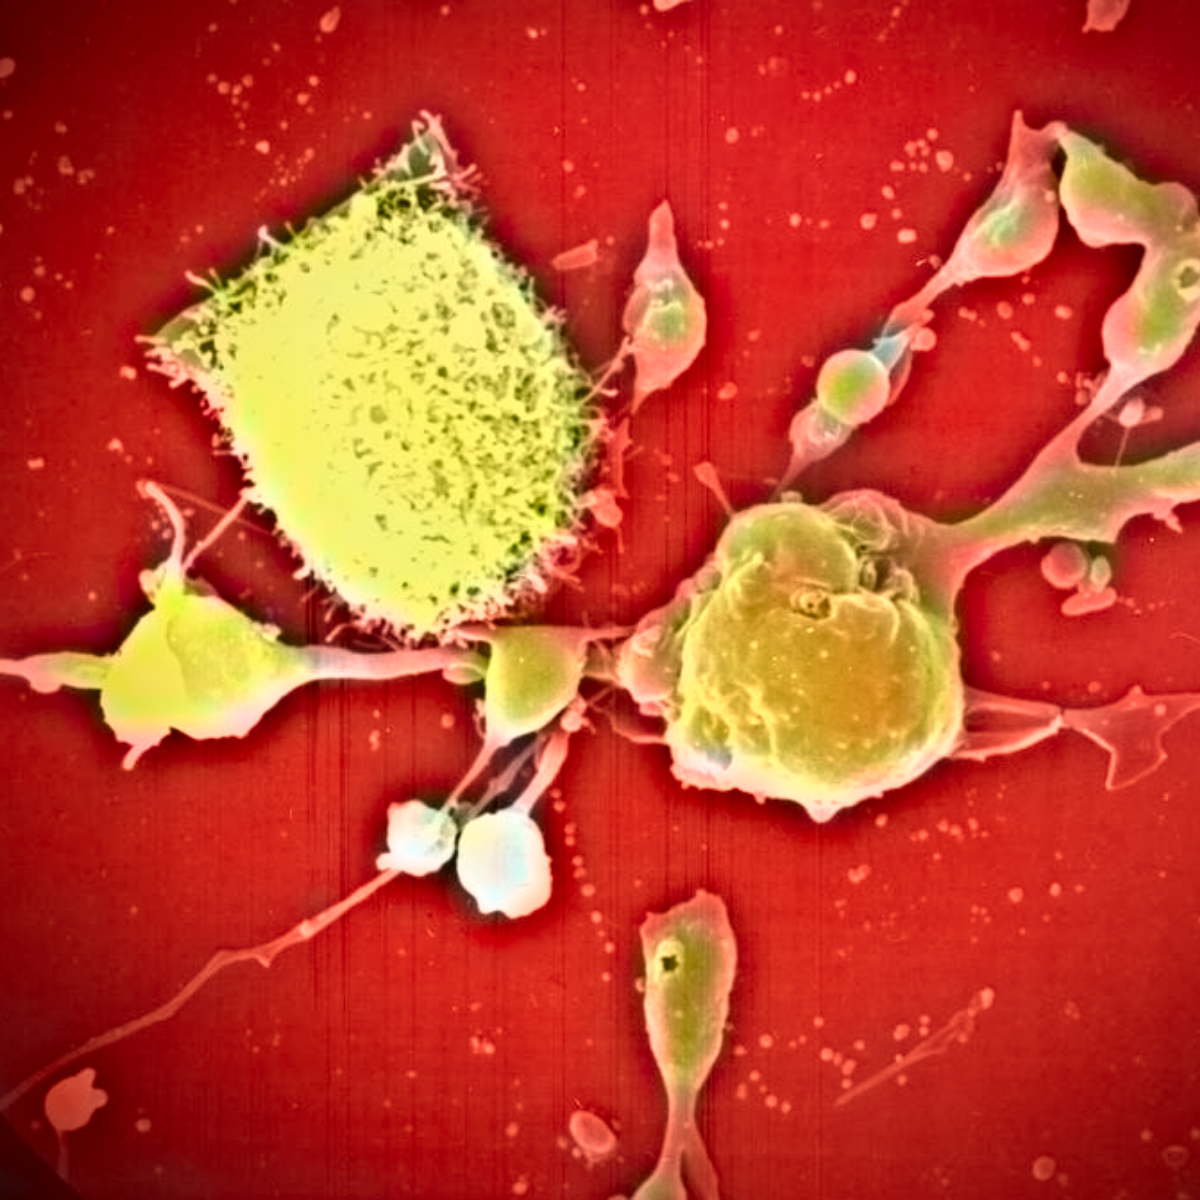 Scanning electron micrograph of SkBr-3 breast cancer cells undergoing apoptosis upon treatment with anticancer agent. Credit : J Stanslas